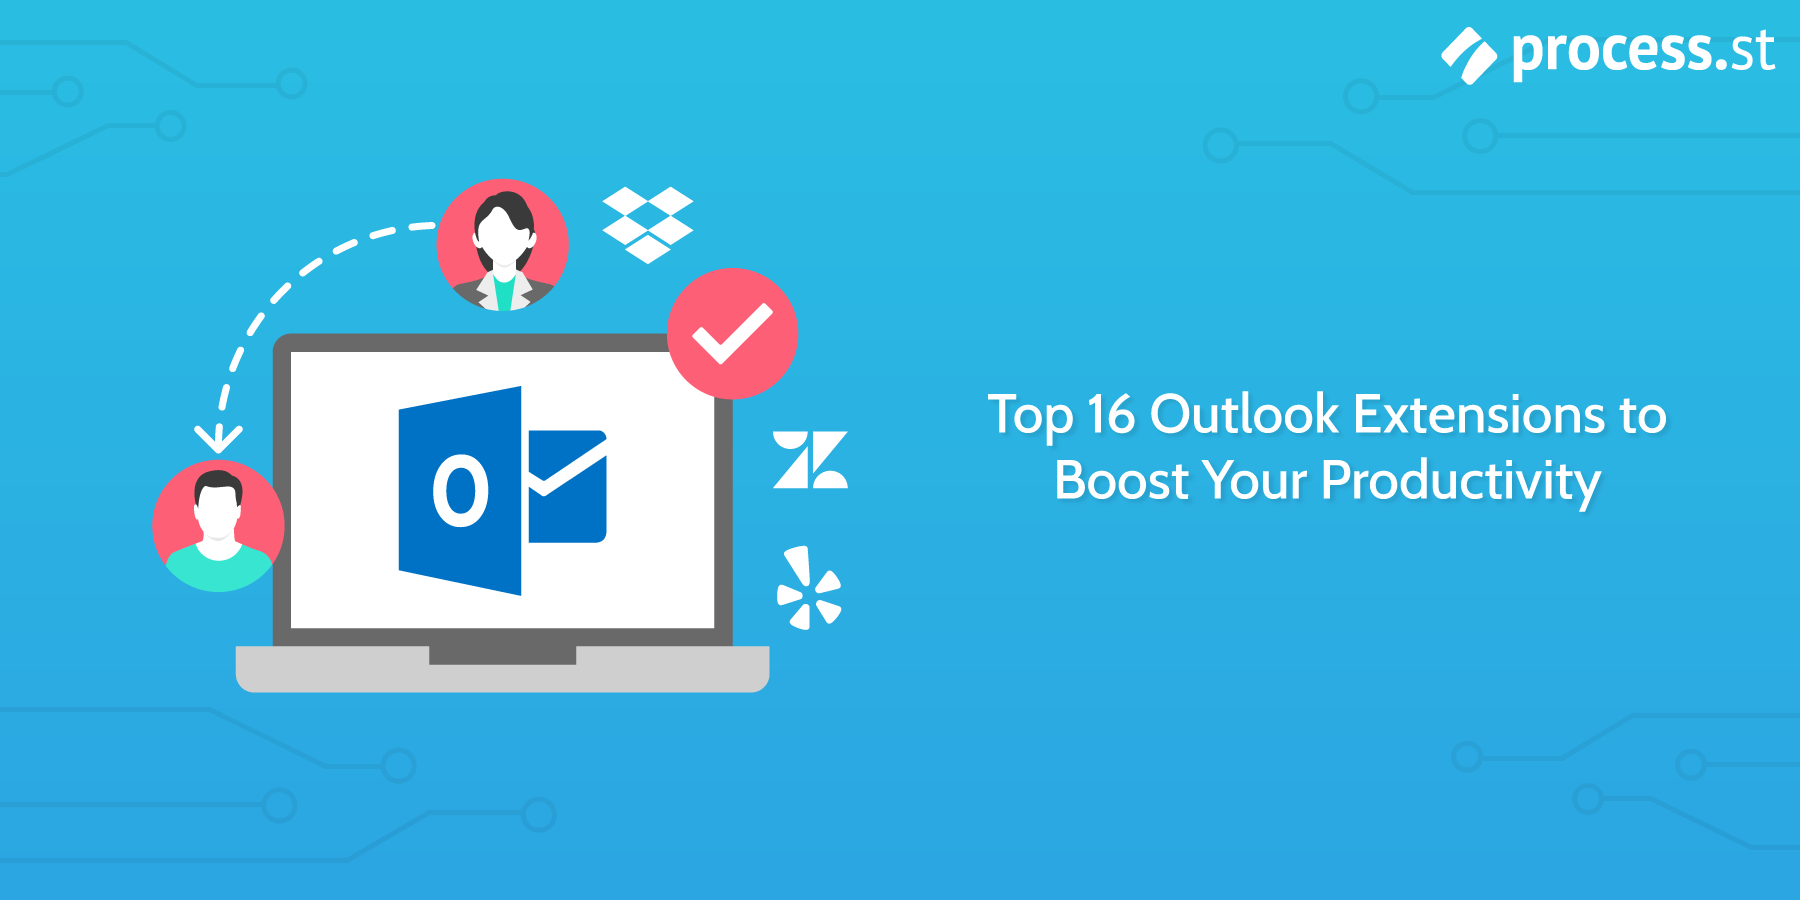 Outlook Extensions